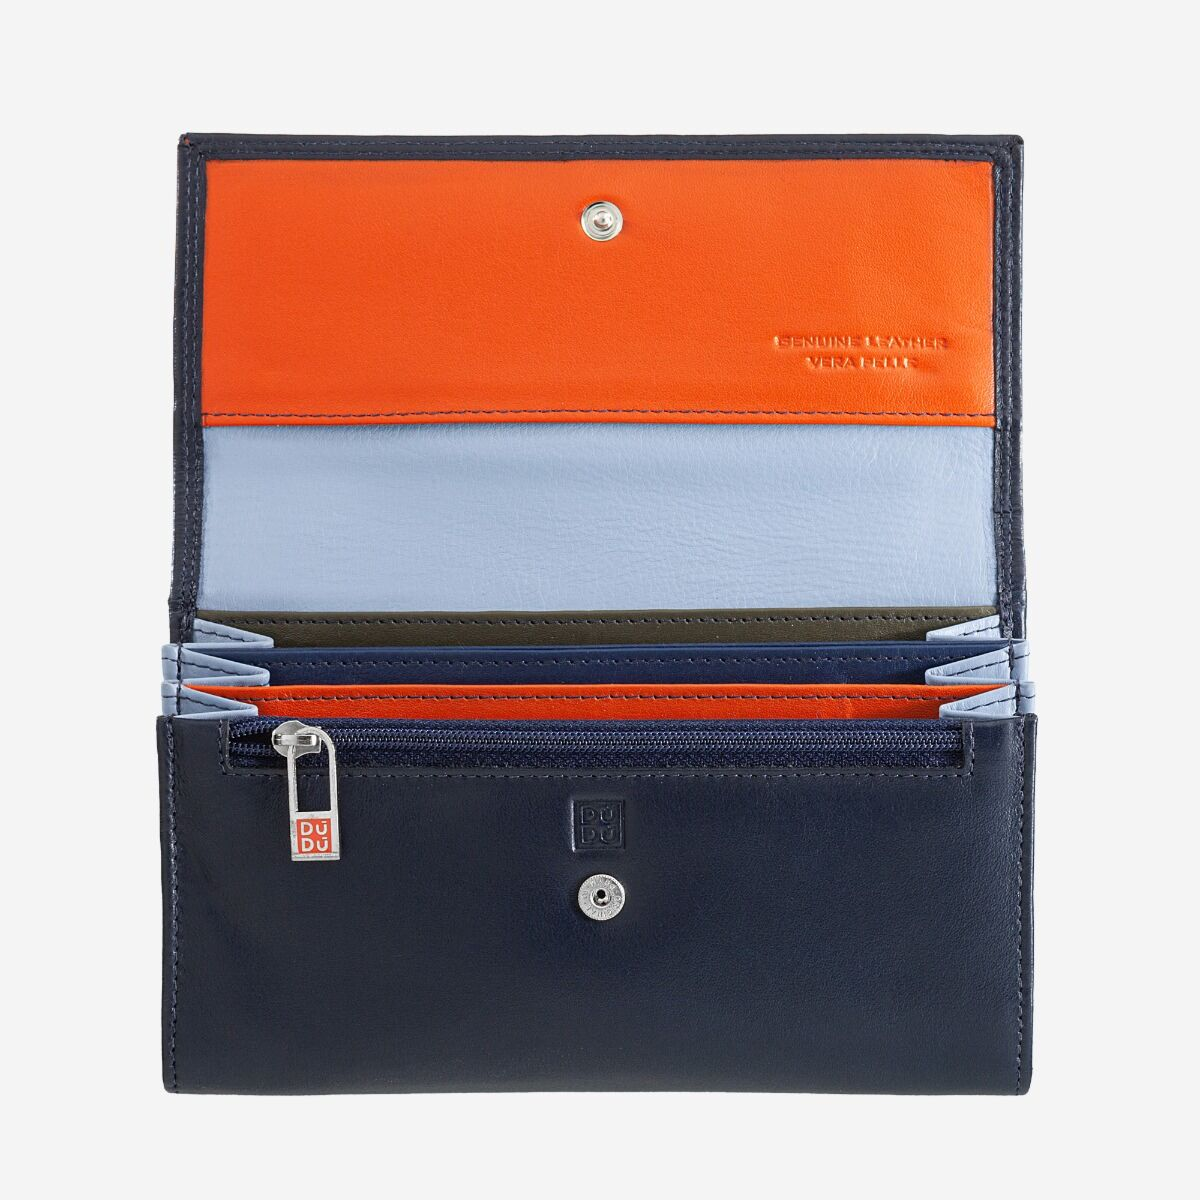 DuDu Womans leather multi color wallet with flap - Navy